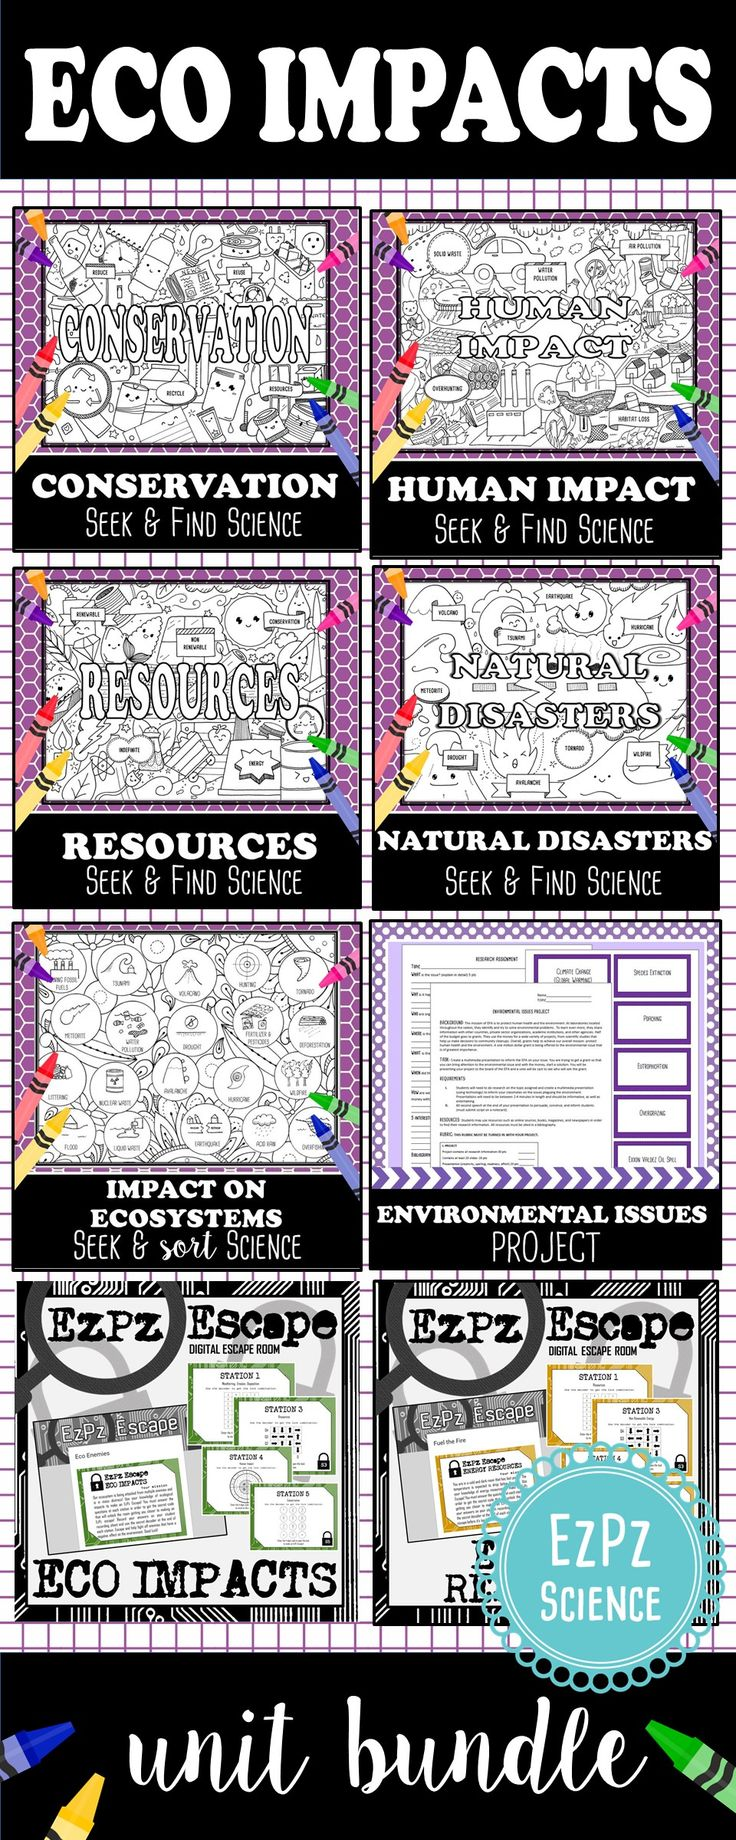 This Ecological Impacts Bundle will make a great addition to your ecosystem unit. This bundle contains my popular Science Seek & Finds, Escape Rooms, Seek and Sorts, and project on topics such as human impact on the environment, conservation, resources, watersheds, and natural disasters.